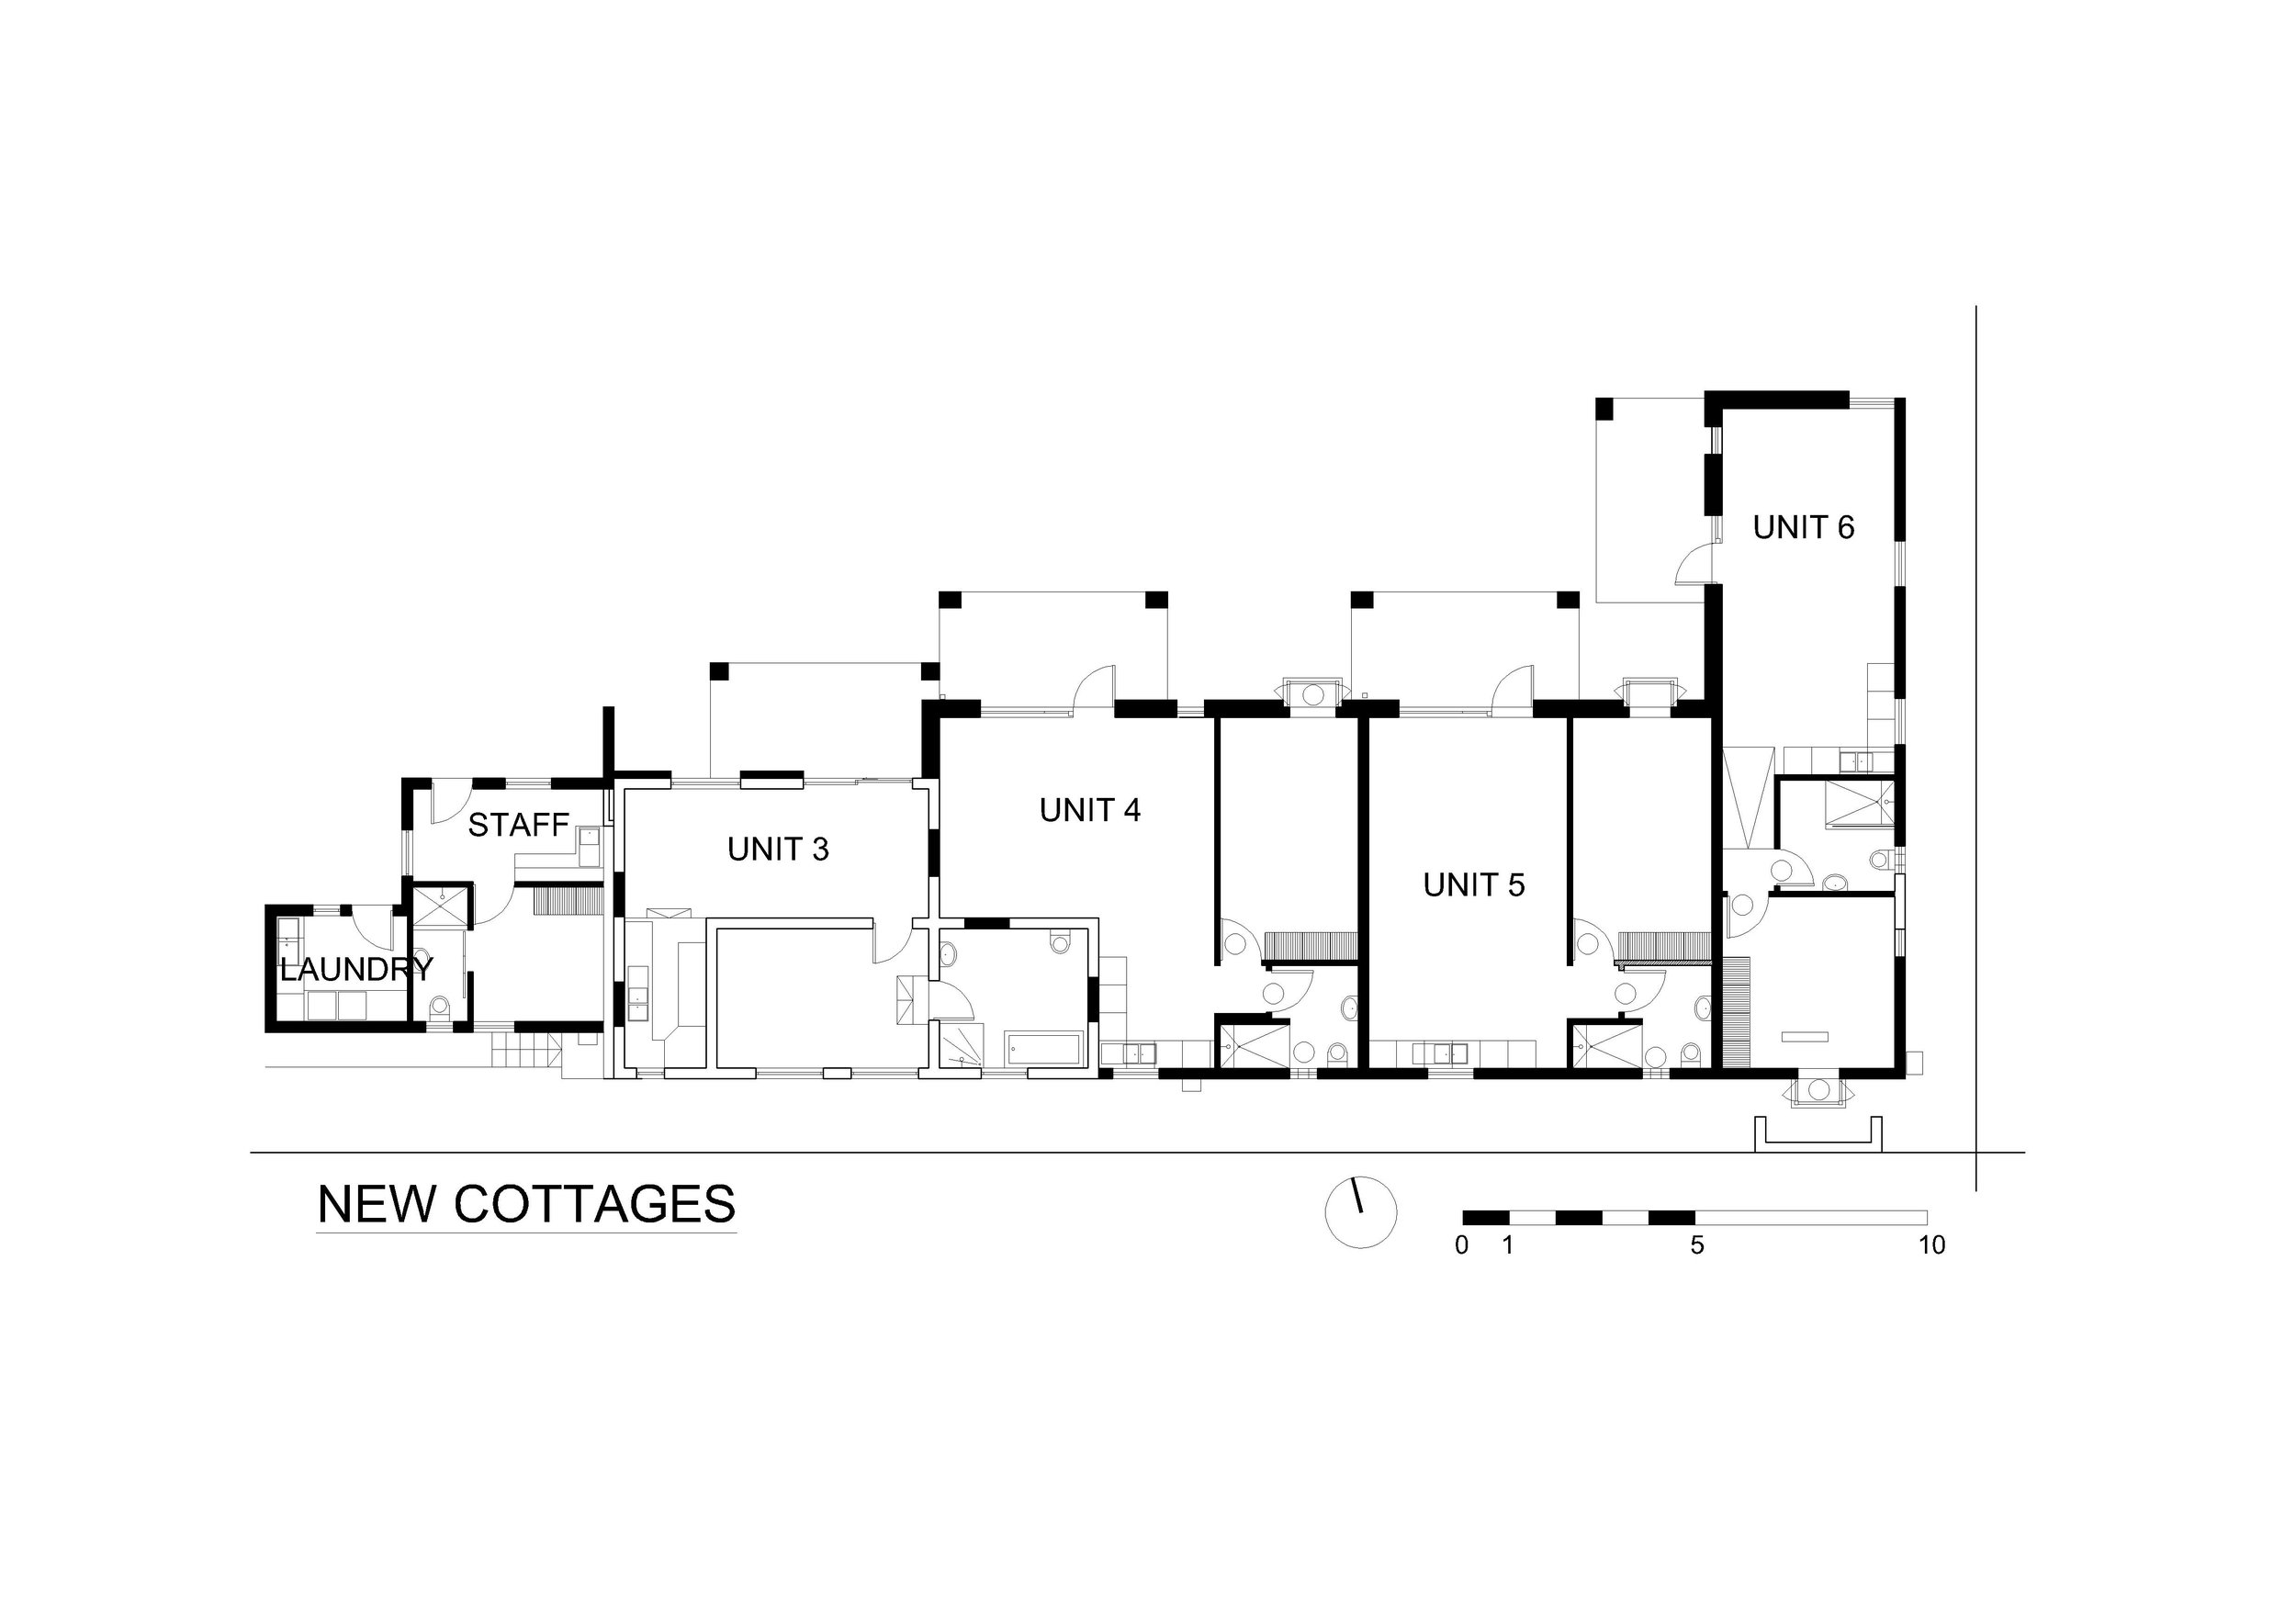 Plan - cottage.jpg